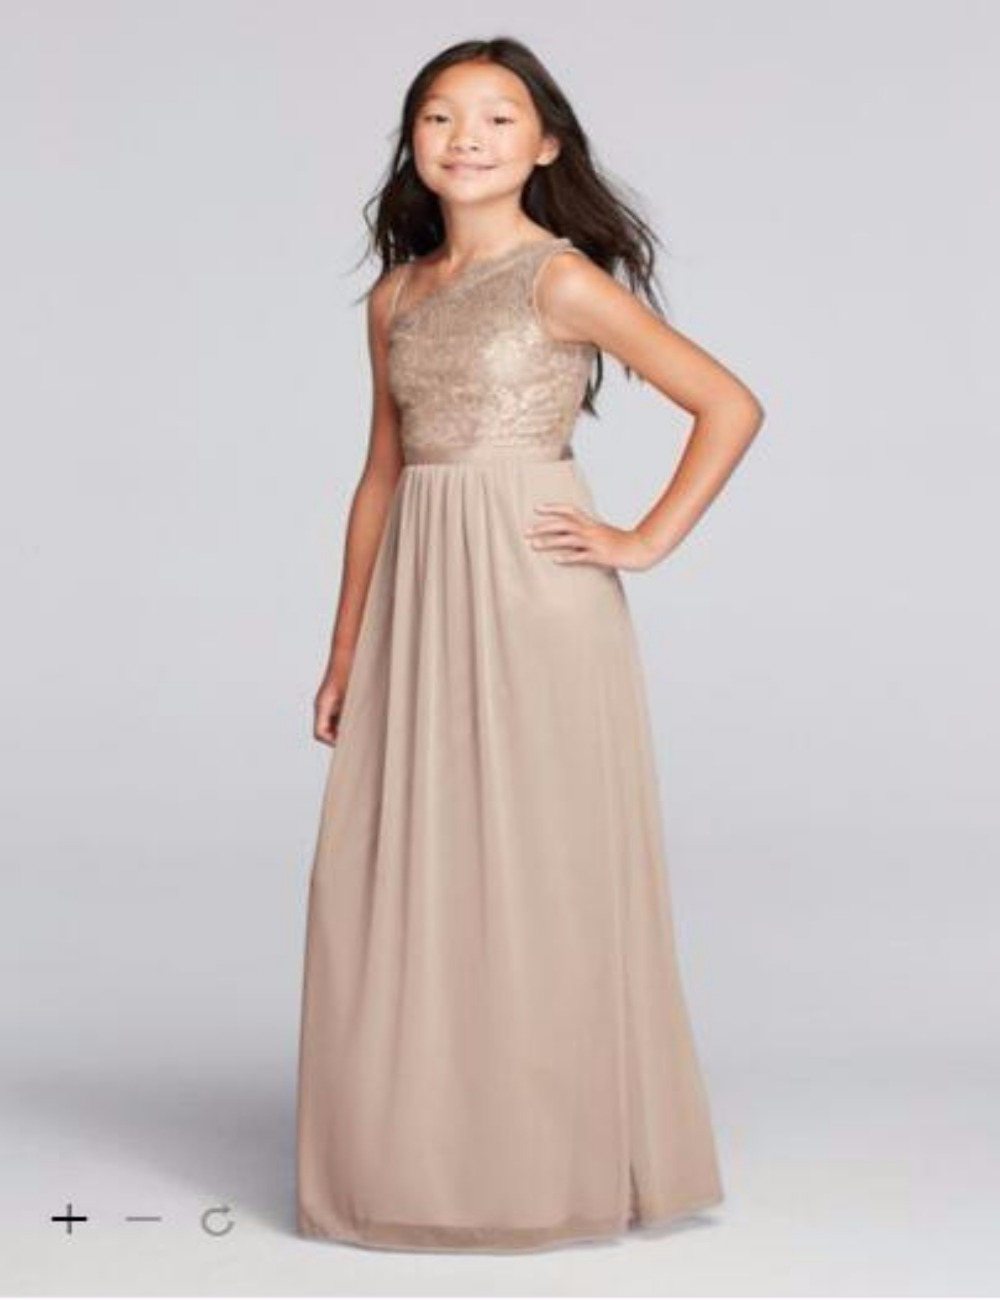 2016 long chiffon a line junior bridesmaid dresses one shouder 2016 long chiffon a line junior bridesmaid dresses one shouder lace bodice and floor length chiffle skirt jb9014m junior gowns in bridesmaid dresses from ombrellifo Images